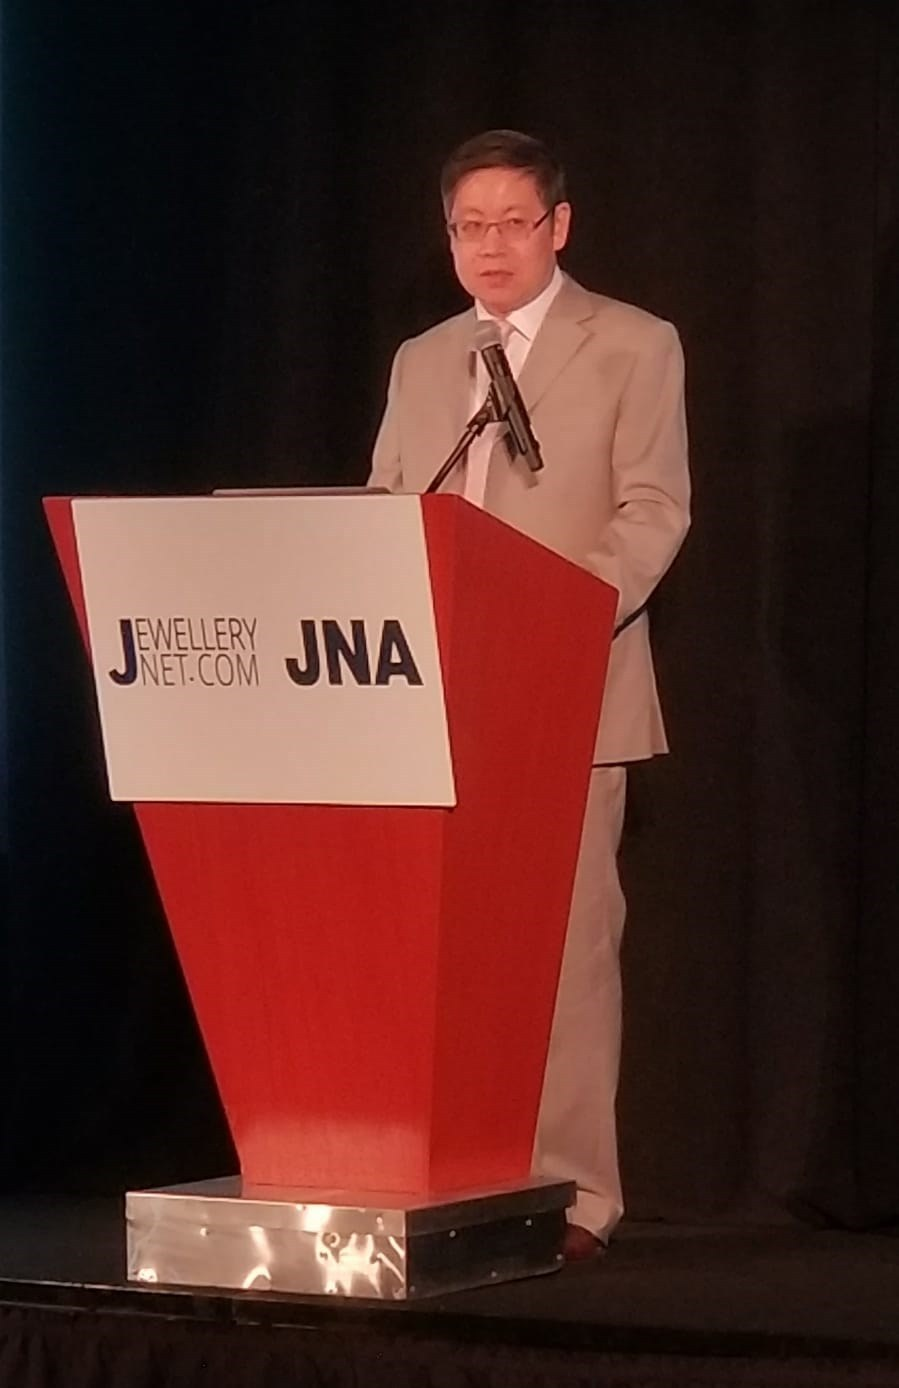 Mr. Julius Zheng, Vice President of the Shenzhen Rough Diamond Exchange